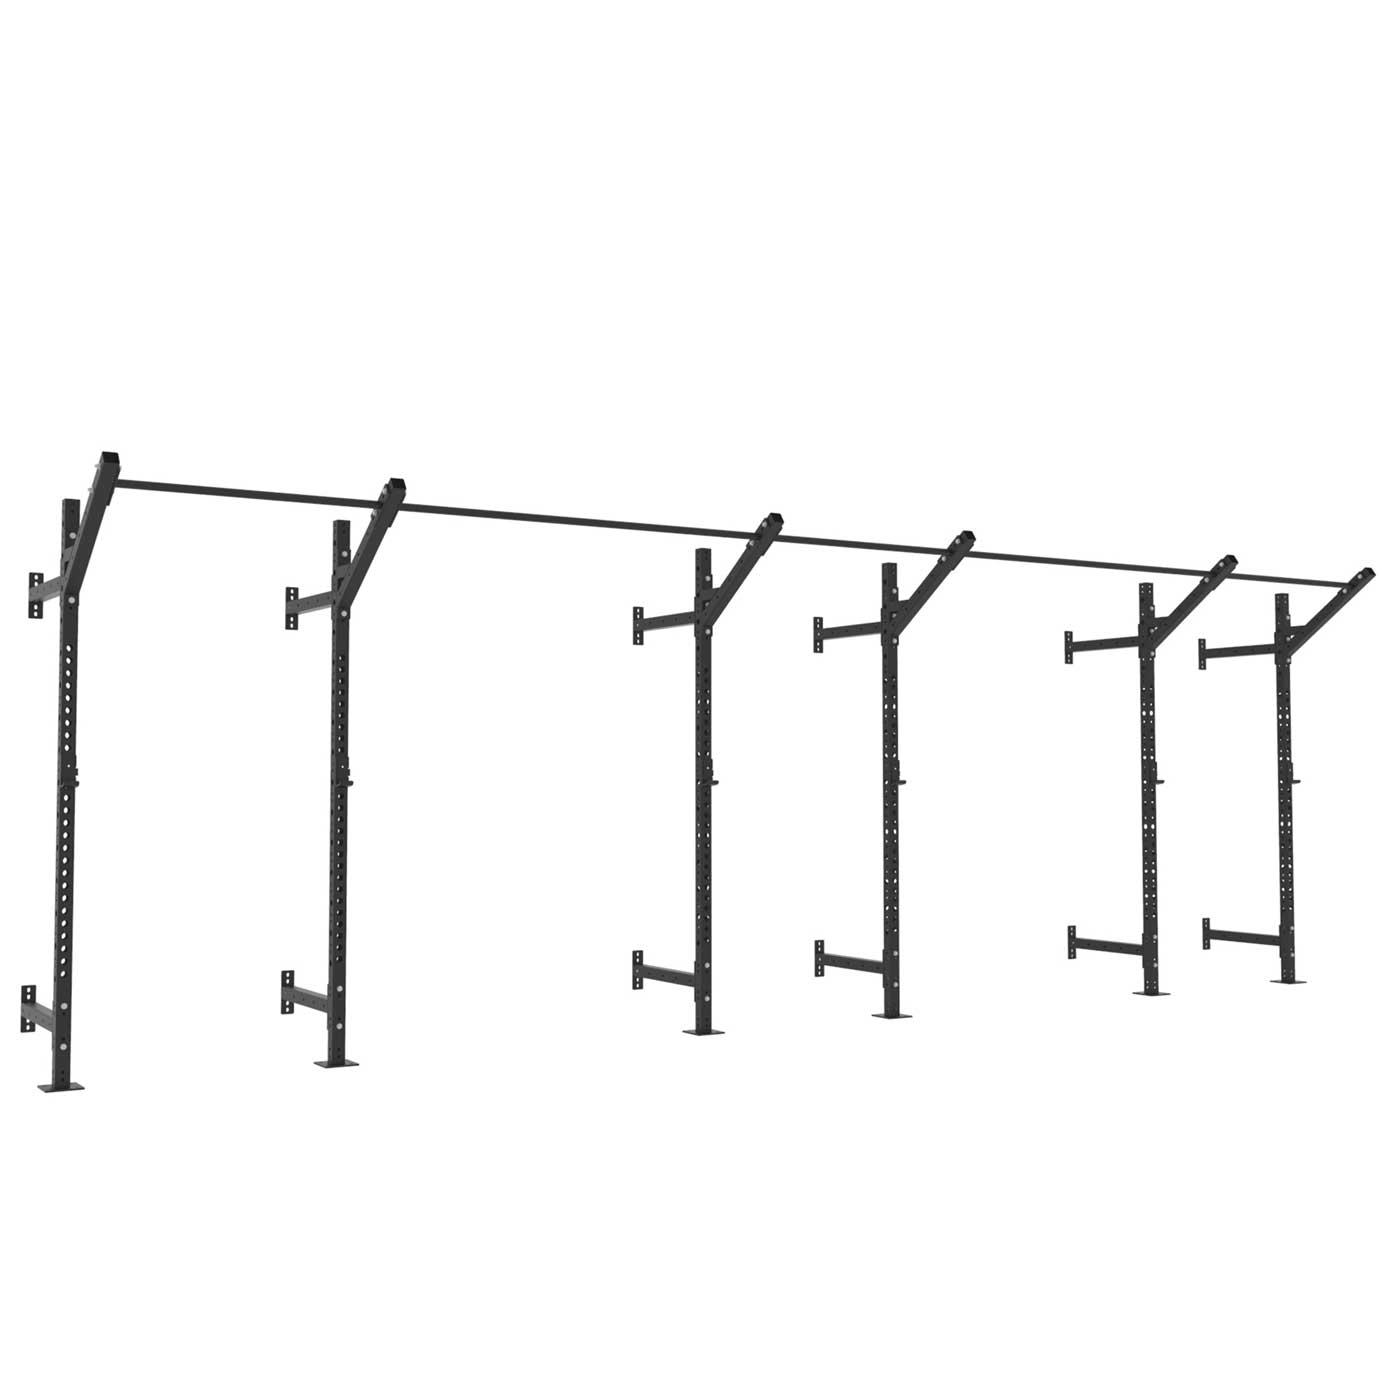 24ft XSR Wall Mounted Pull-up Rig